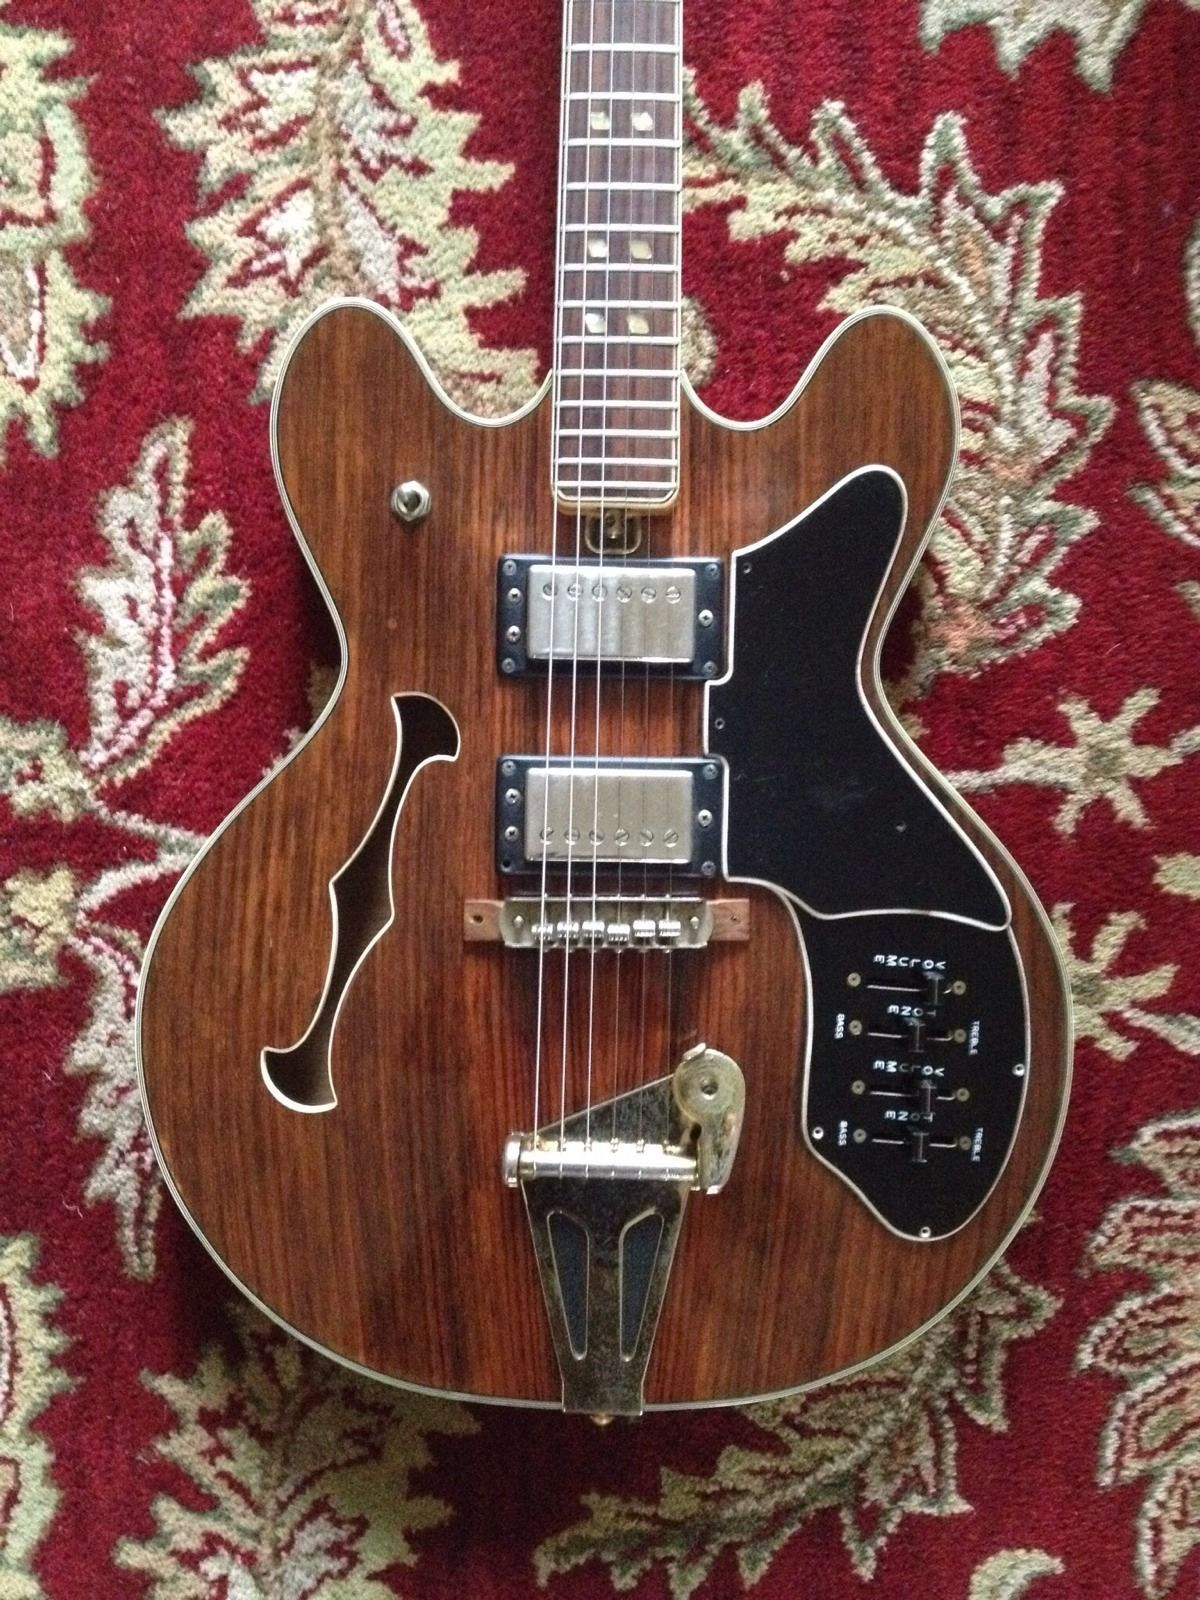 Vintage Late 1960s National Es 335 Style Semi Hollow Body Electric Guitar Electric Guitar Guitar Archtop Guitar